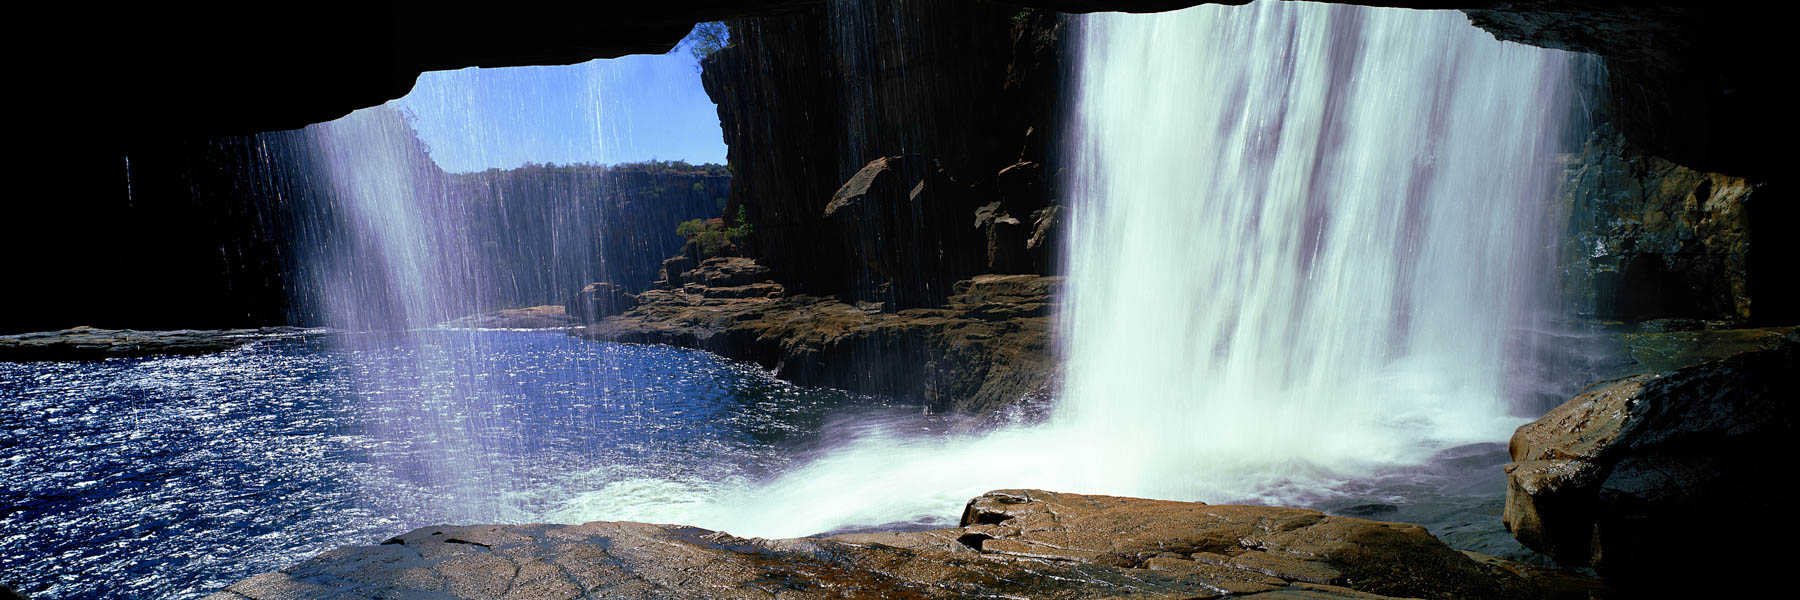 The view from the cavern behind the middle drop of Mitchell Falls, Kimberley, WA, Australia.